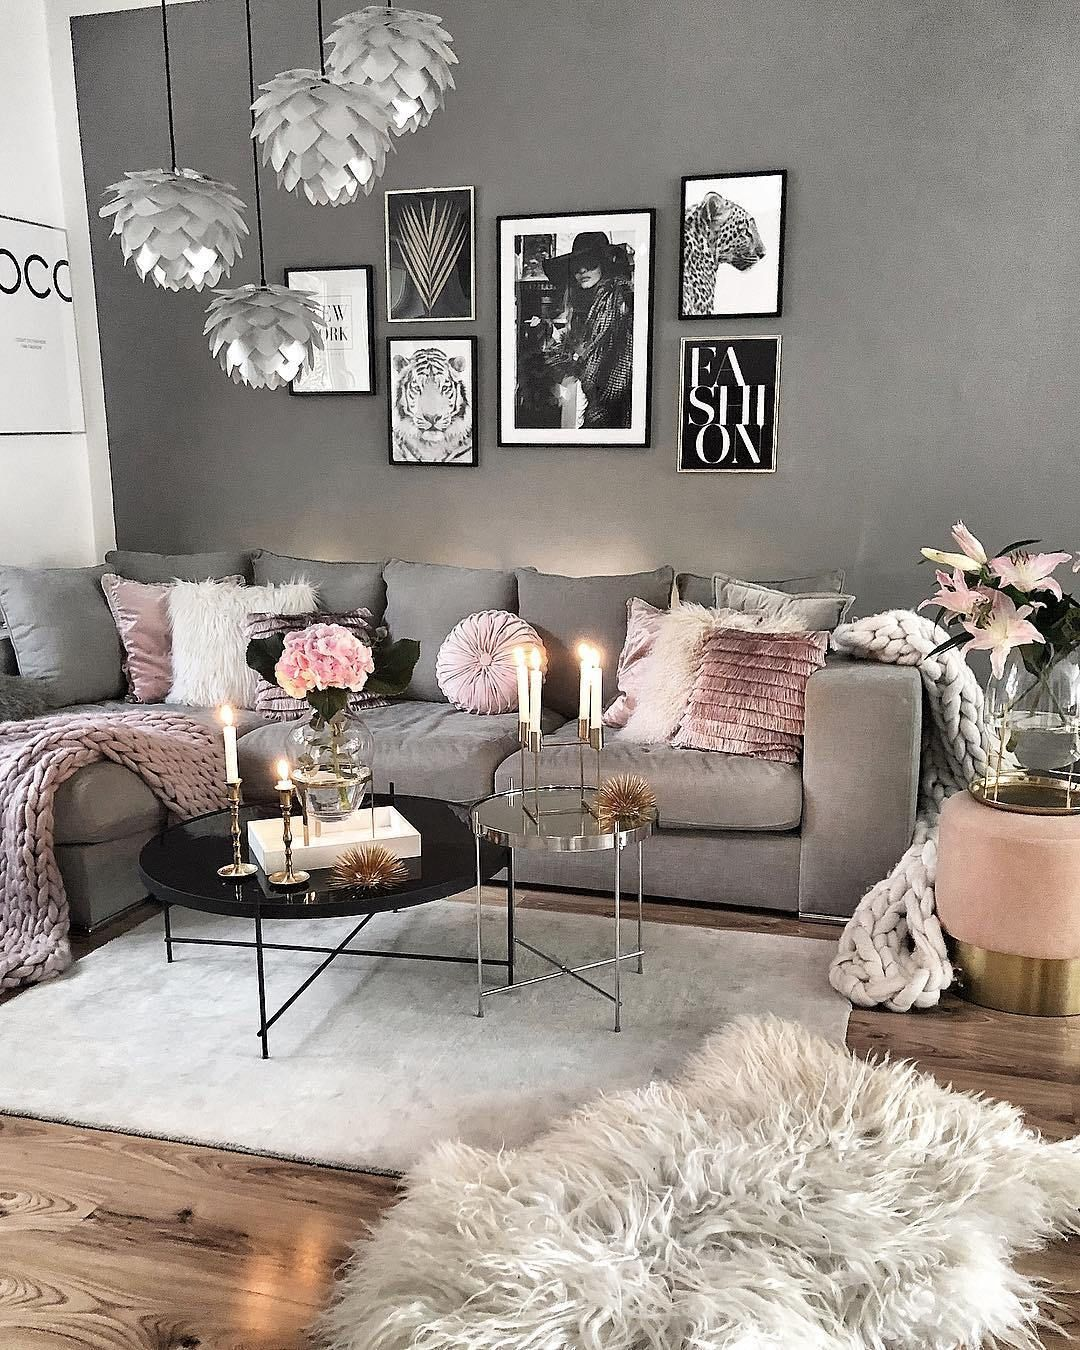 Recreate This Grey And Pink Cozy Living Room Decor Livingroom Decor Pink Living Room Luxury Room Decor Living Room Decor Cozy